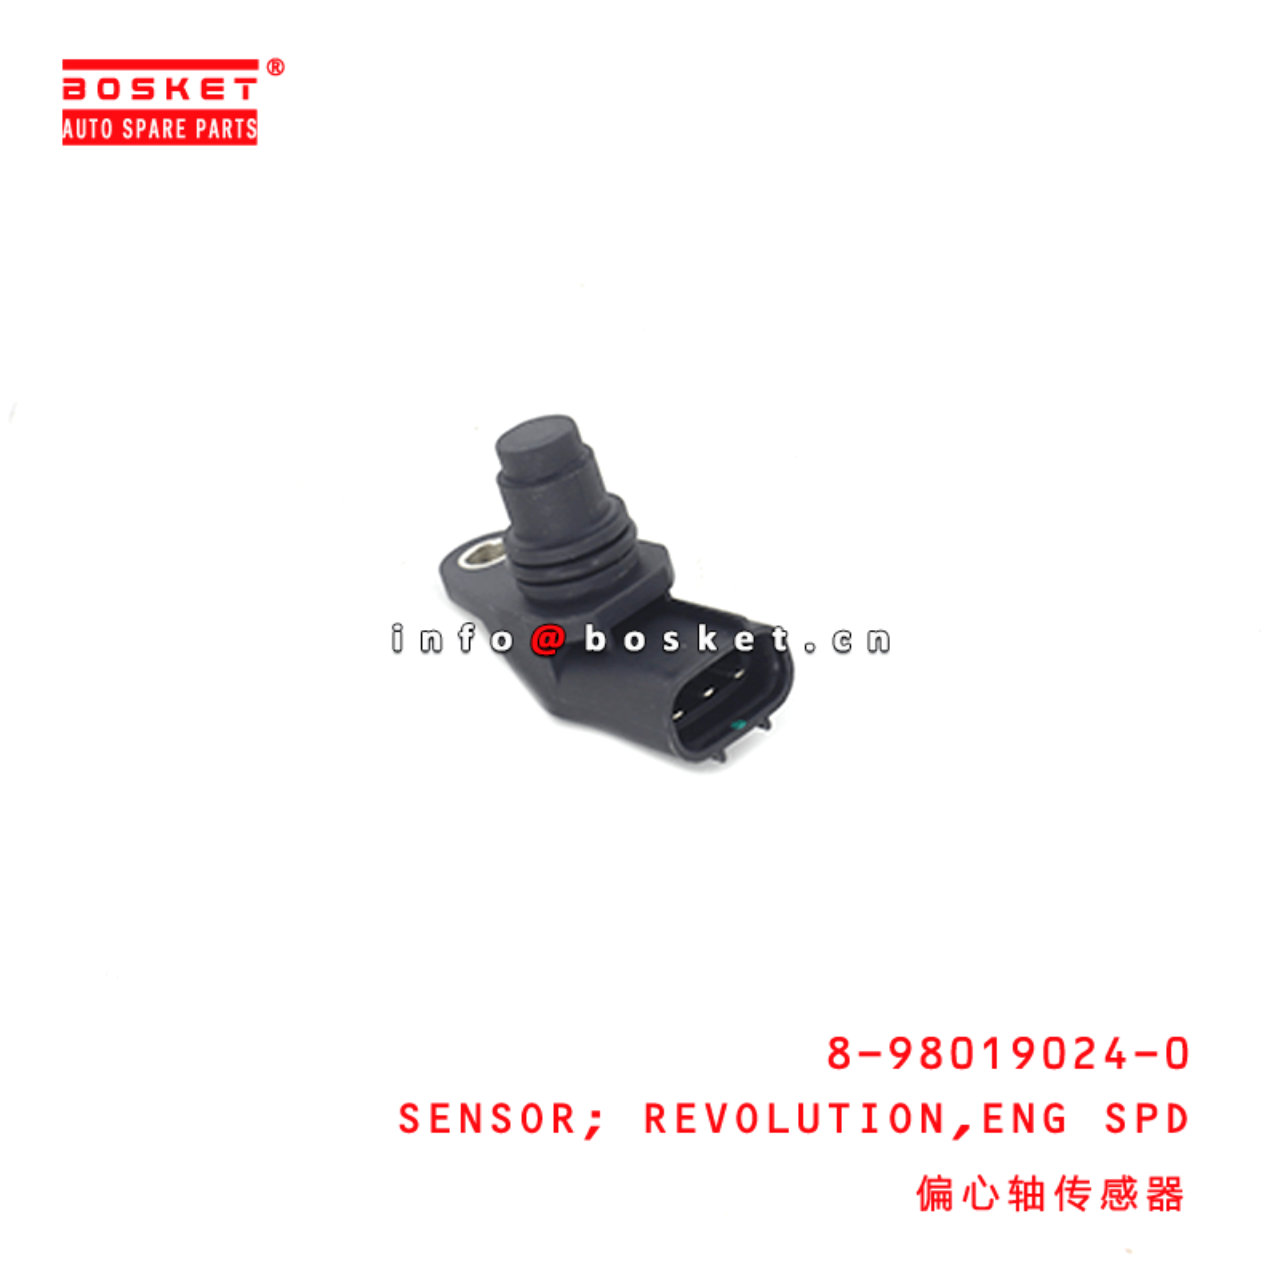 8-98019024-0 Engine Speed Revolution Sensor 8980190240 Suitable for ISUZU ELF 4HK1